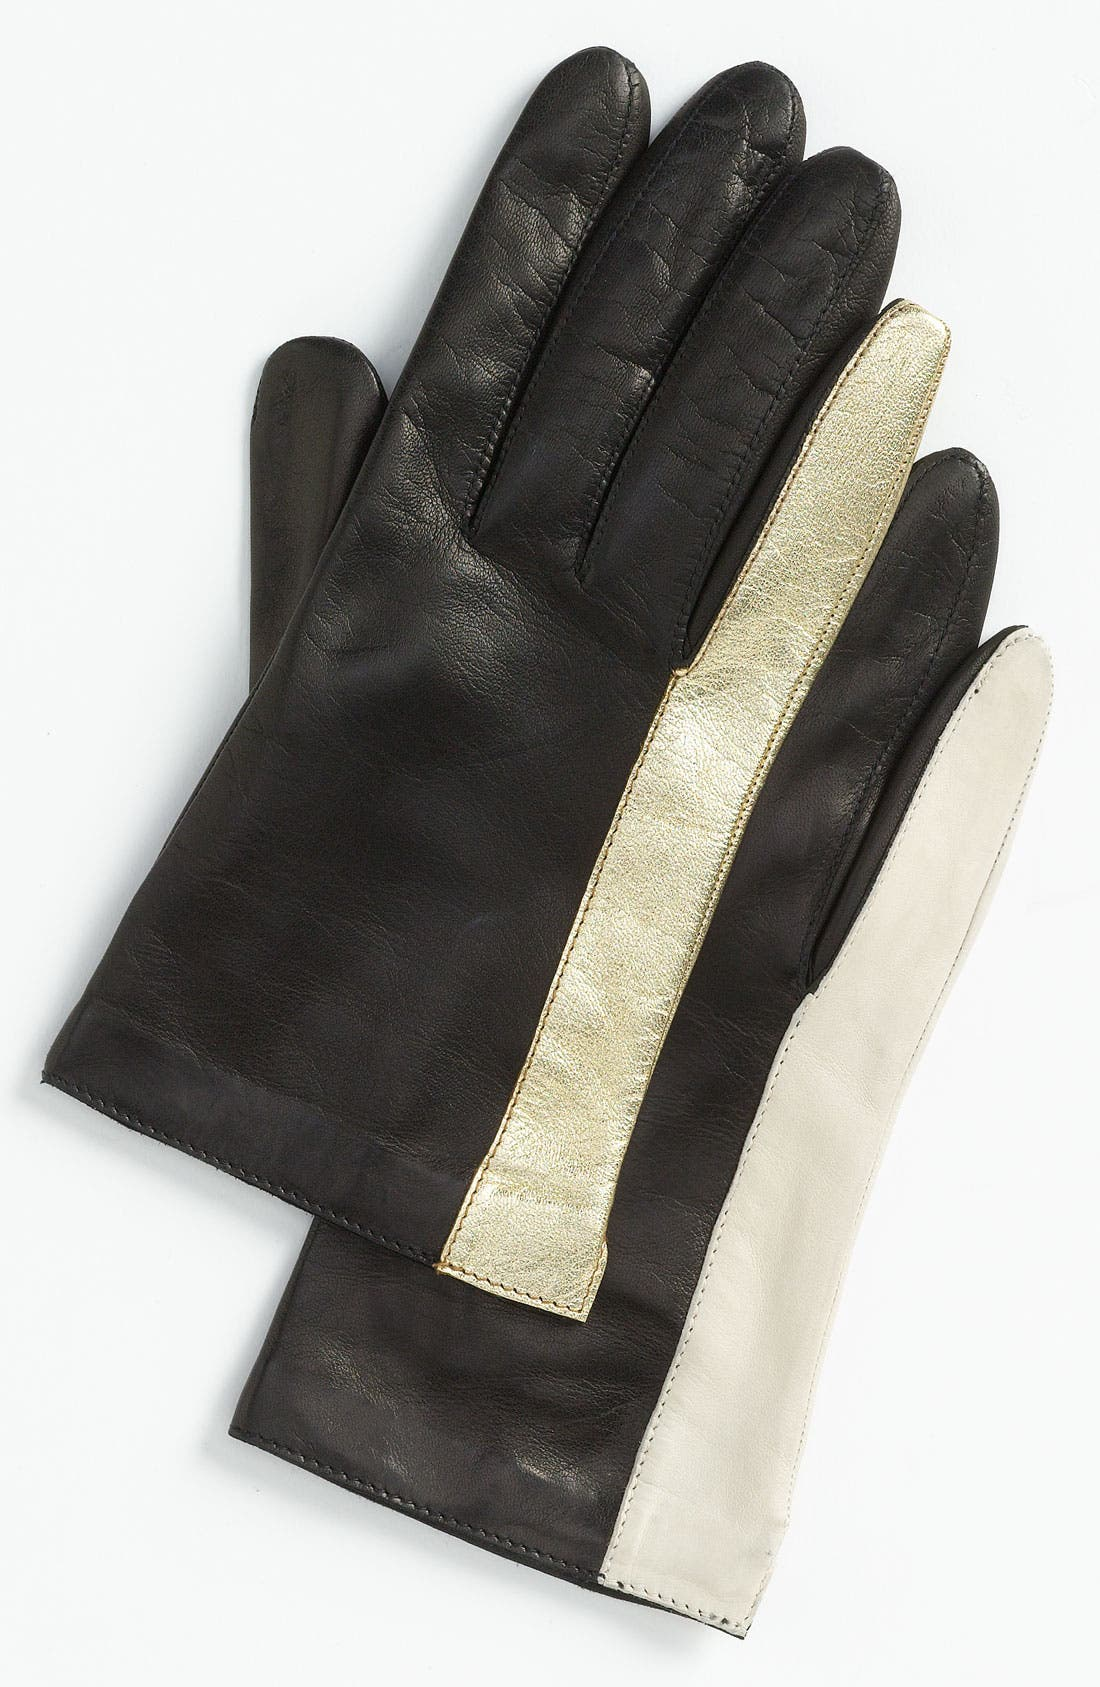 Main Image - Diane von Furstenberg Colorblock Leather Gloves